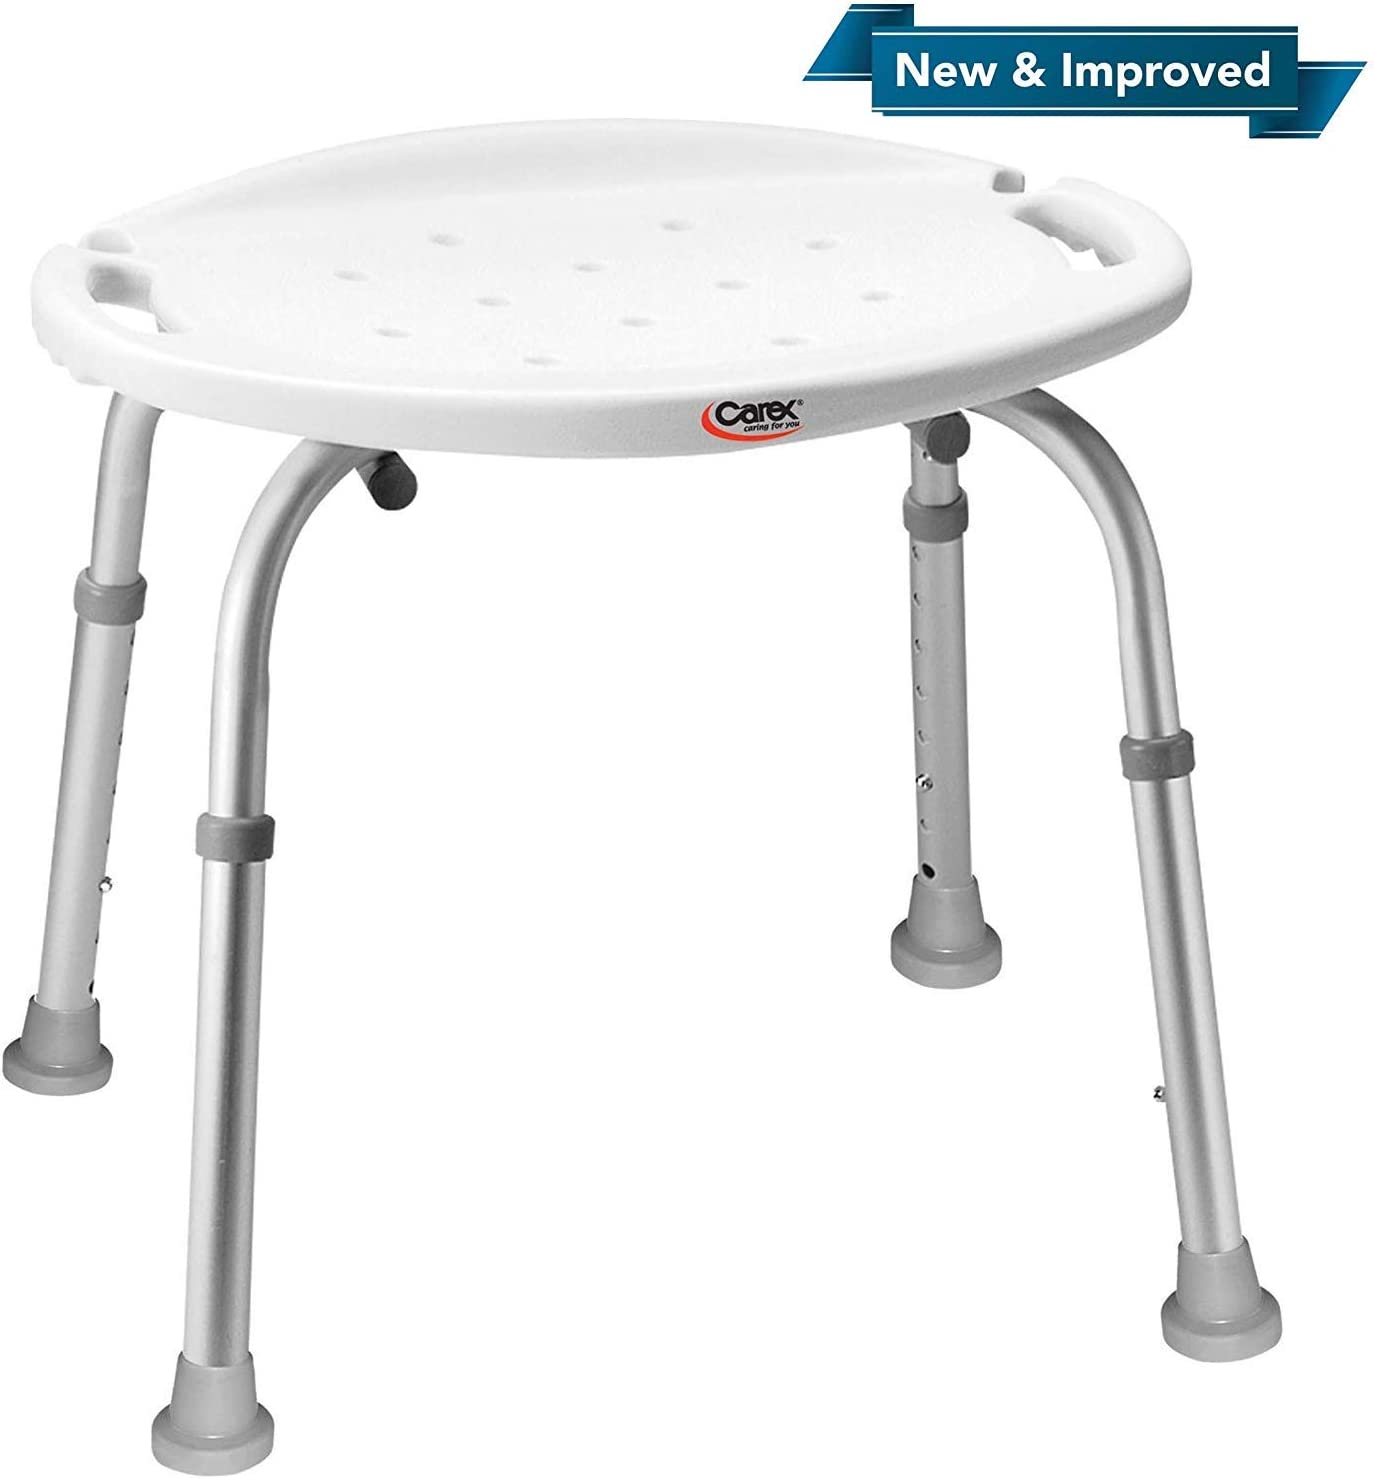 Carex Adjustable Bath and Shower Seat – Shower Stool - Aluminum Bath Seat - Shower Chair with Handle